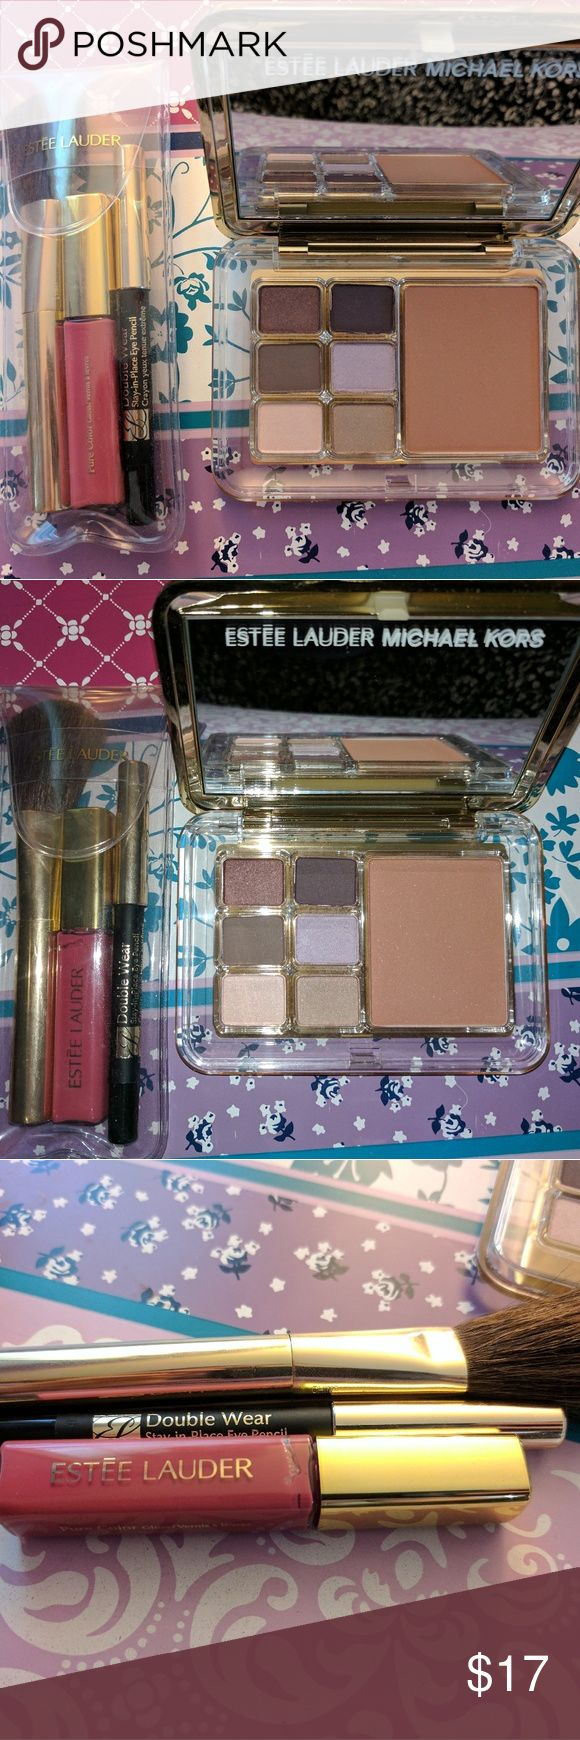 Estee Lauder Michael Kors Makeup Set A mirrored palette of eyeshadow and bronzer PLUS a black liner pencil, a rich colored lip gloss, and a makeup brush, all by the Estée Lauder and Michael Kors collaboration. Six beautiful eyeshadow colors with a large bronzer pan. Never used - received as a gift. First picture of the set is with no flash, second picture of the set is with flash. Swatches or more pictures available upon request. Estee Lauder Makeup